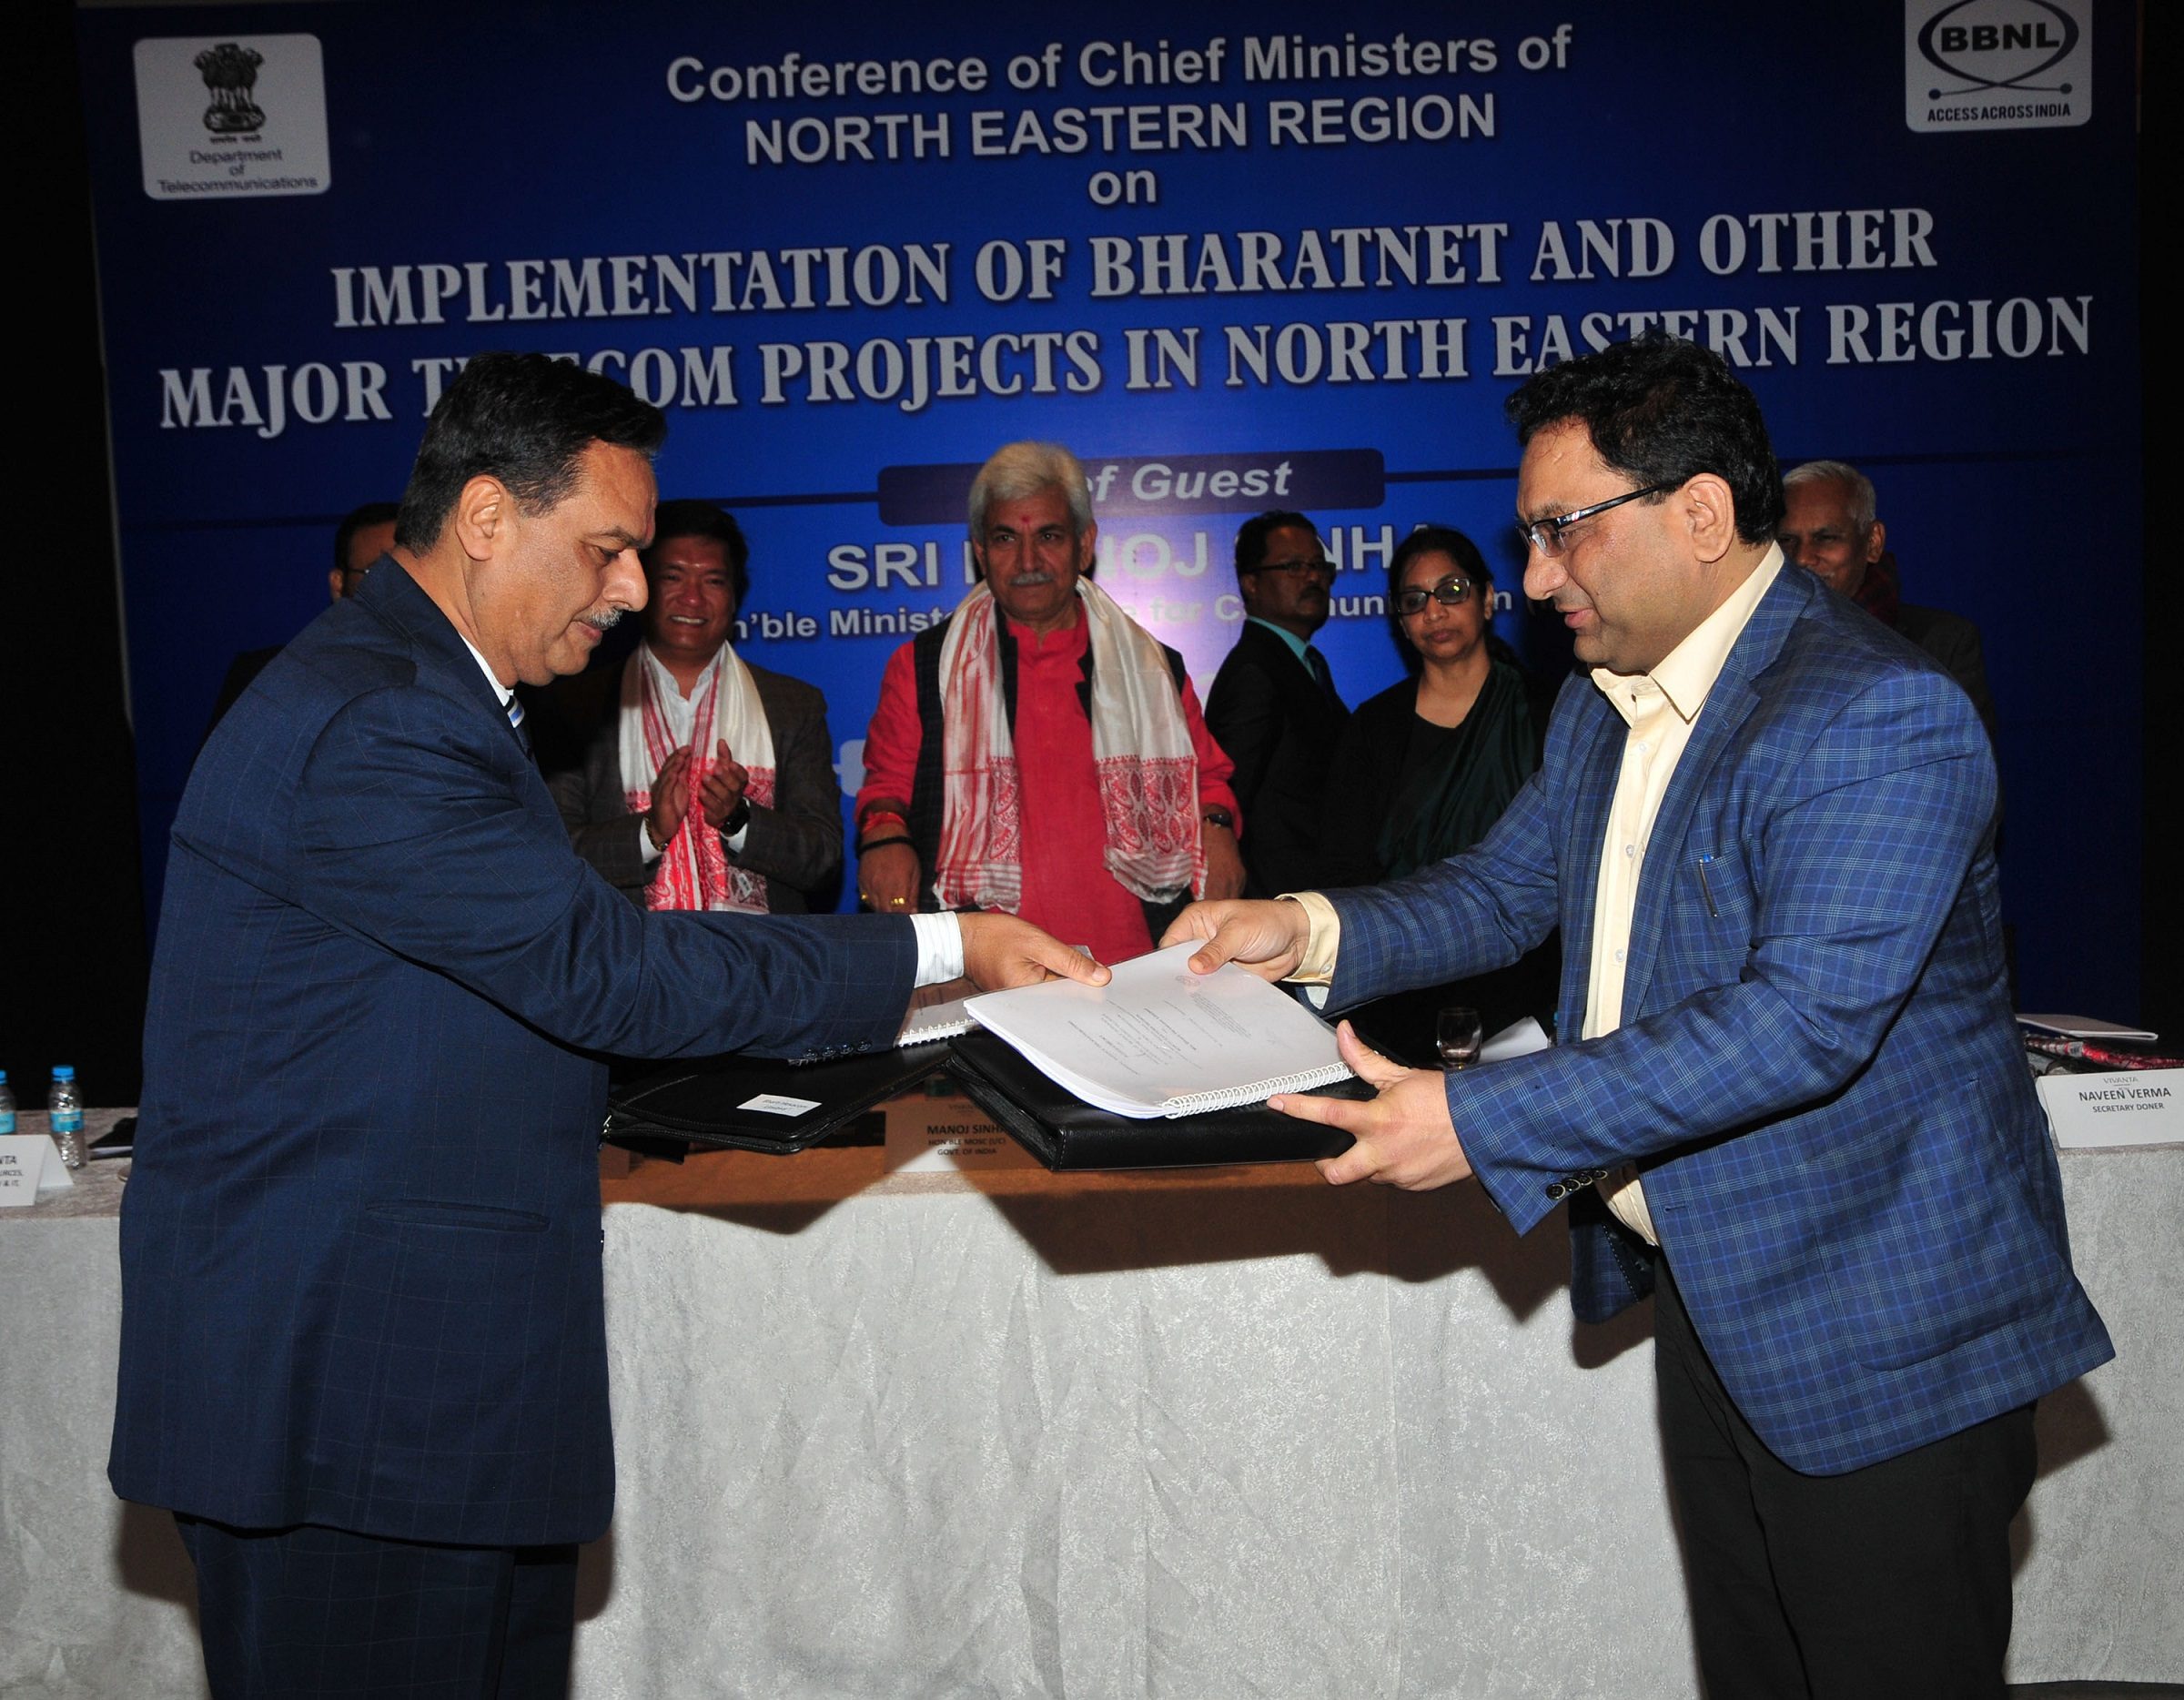 Signing MOU between BSNL and Airtel at   the conference on Implementation of Bharat Net and other Major Telecom Projects in North Eastern Region in Guwahati on 16-01-18. Pix by UB Photos